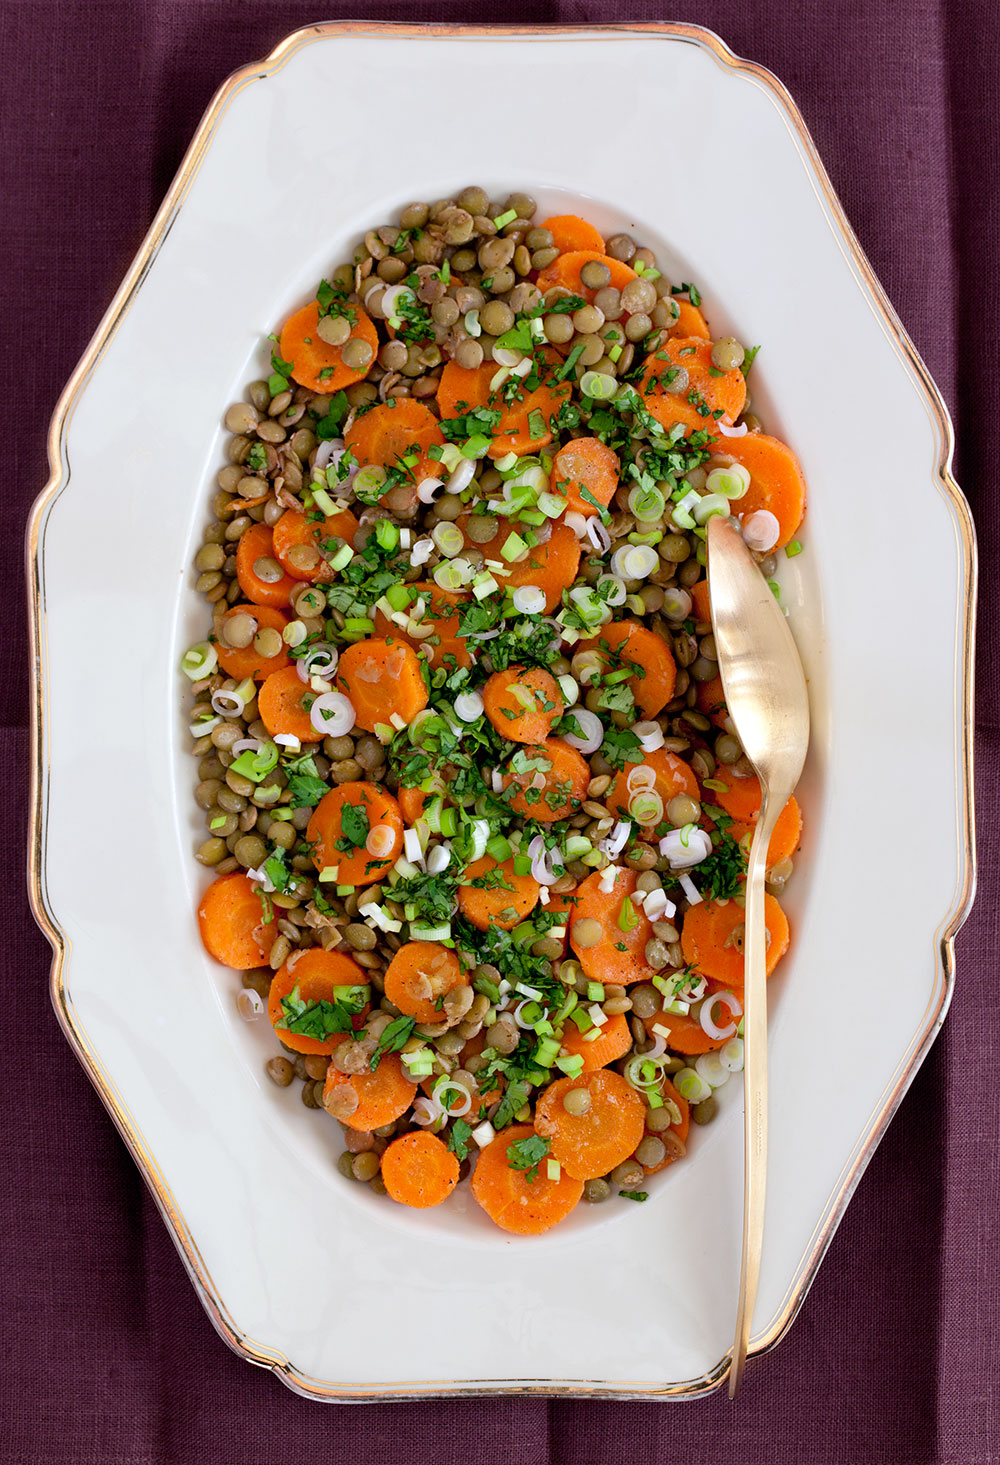 Spicy Carrot and Green Lentil Salad 2